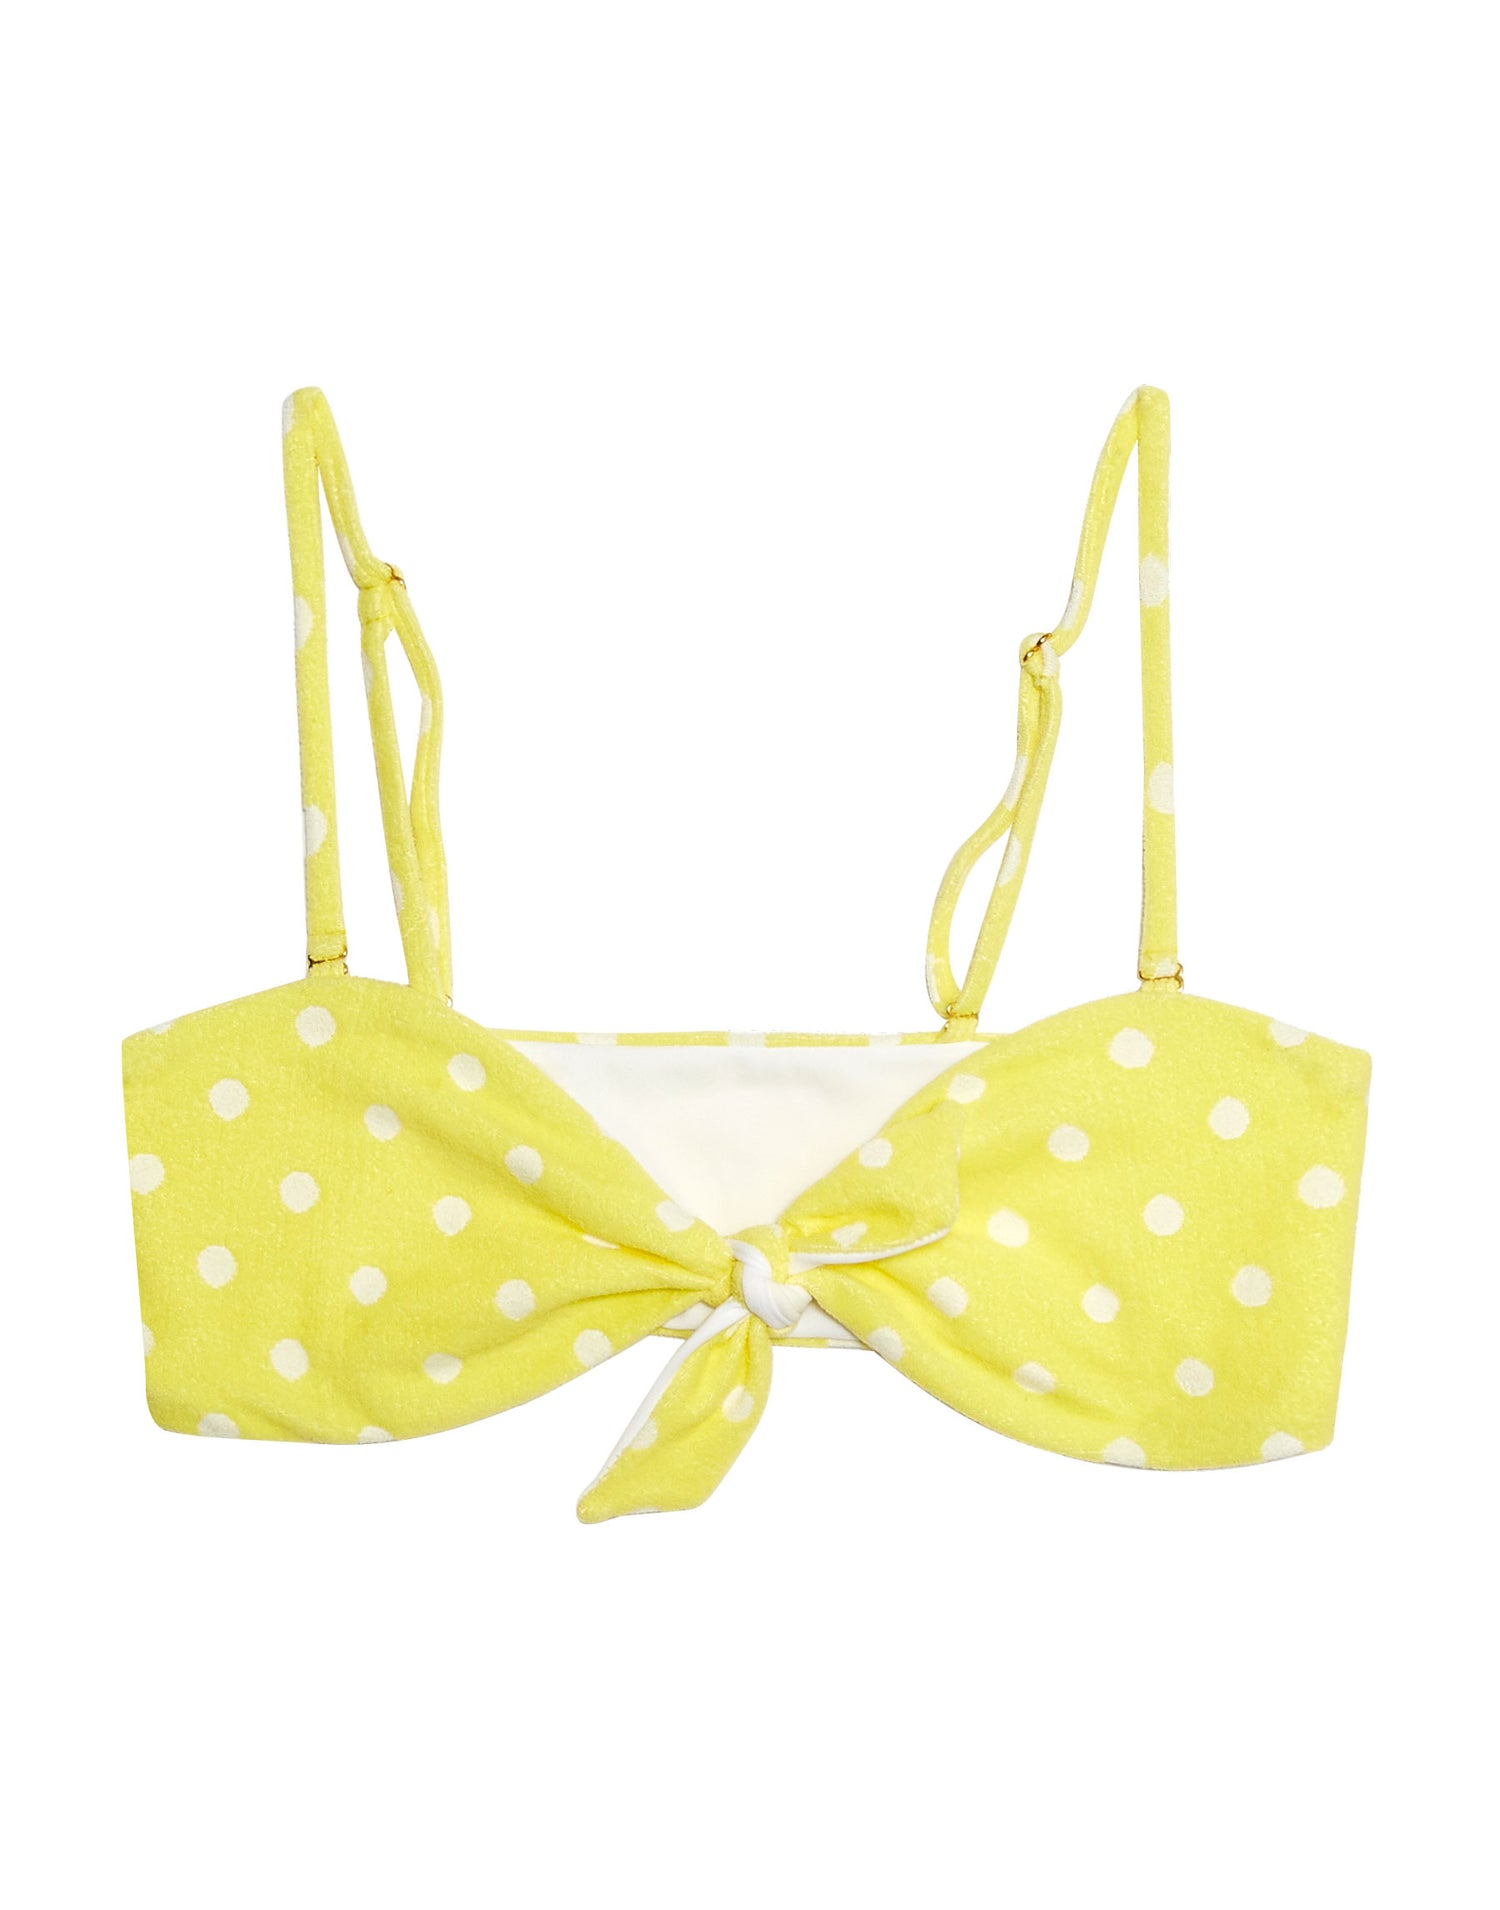 Layla Bandeau Bikini Top in Lemon Yellow Polka Dot with Straps - product view